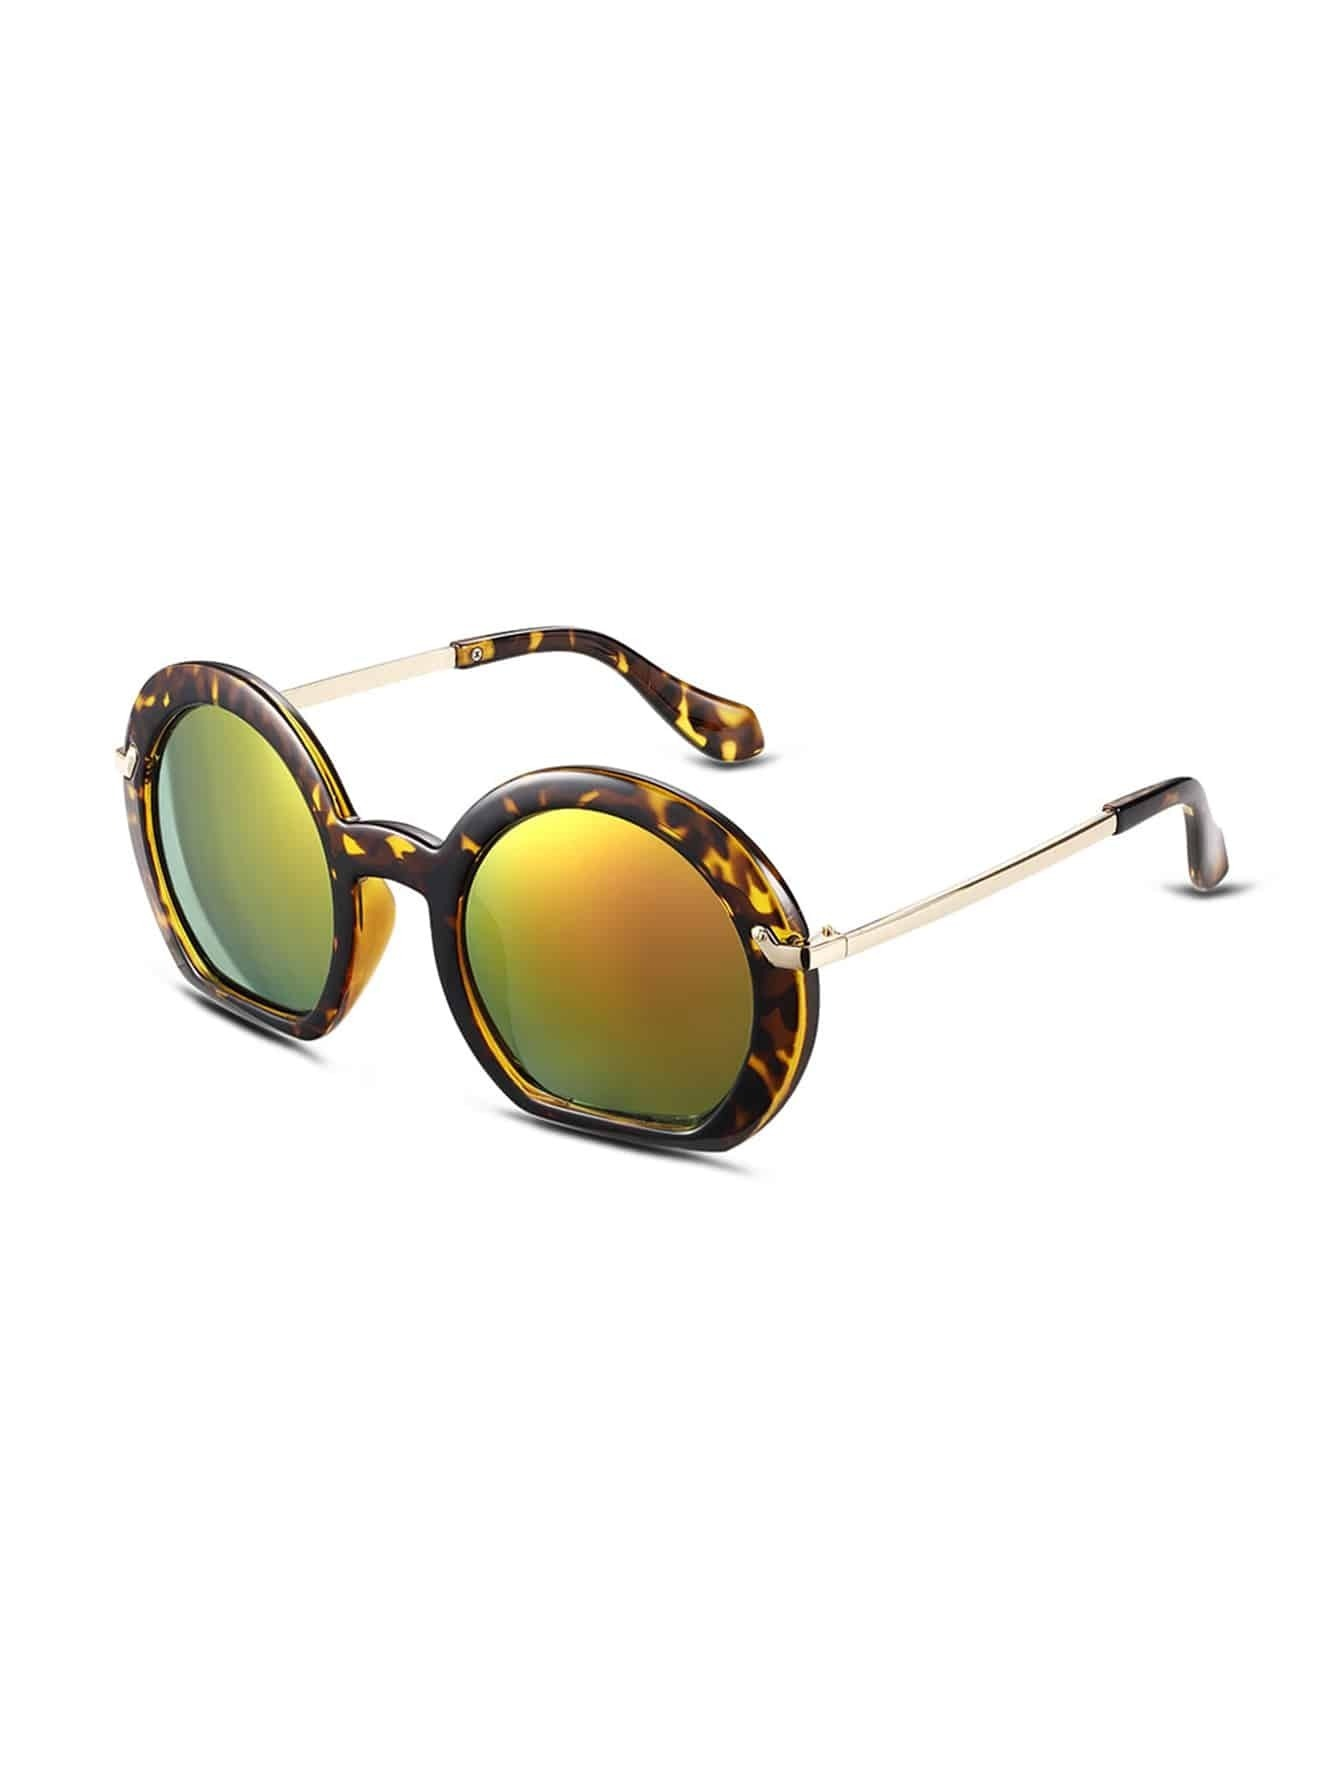 Big Gold Frame Sunglasses : Yellow Tortoise Frame Large Lens Gold Arm Sunglasses